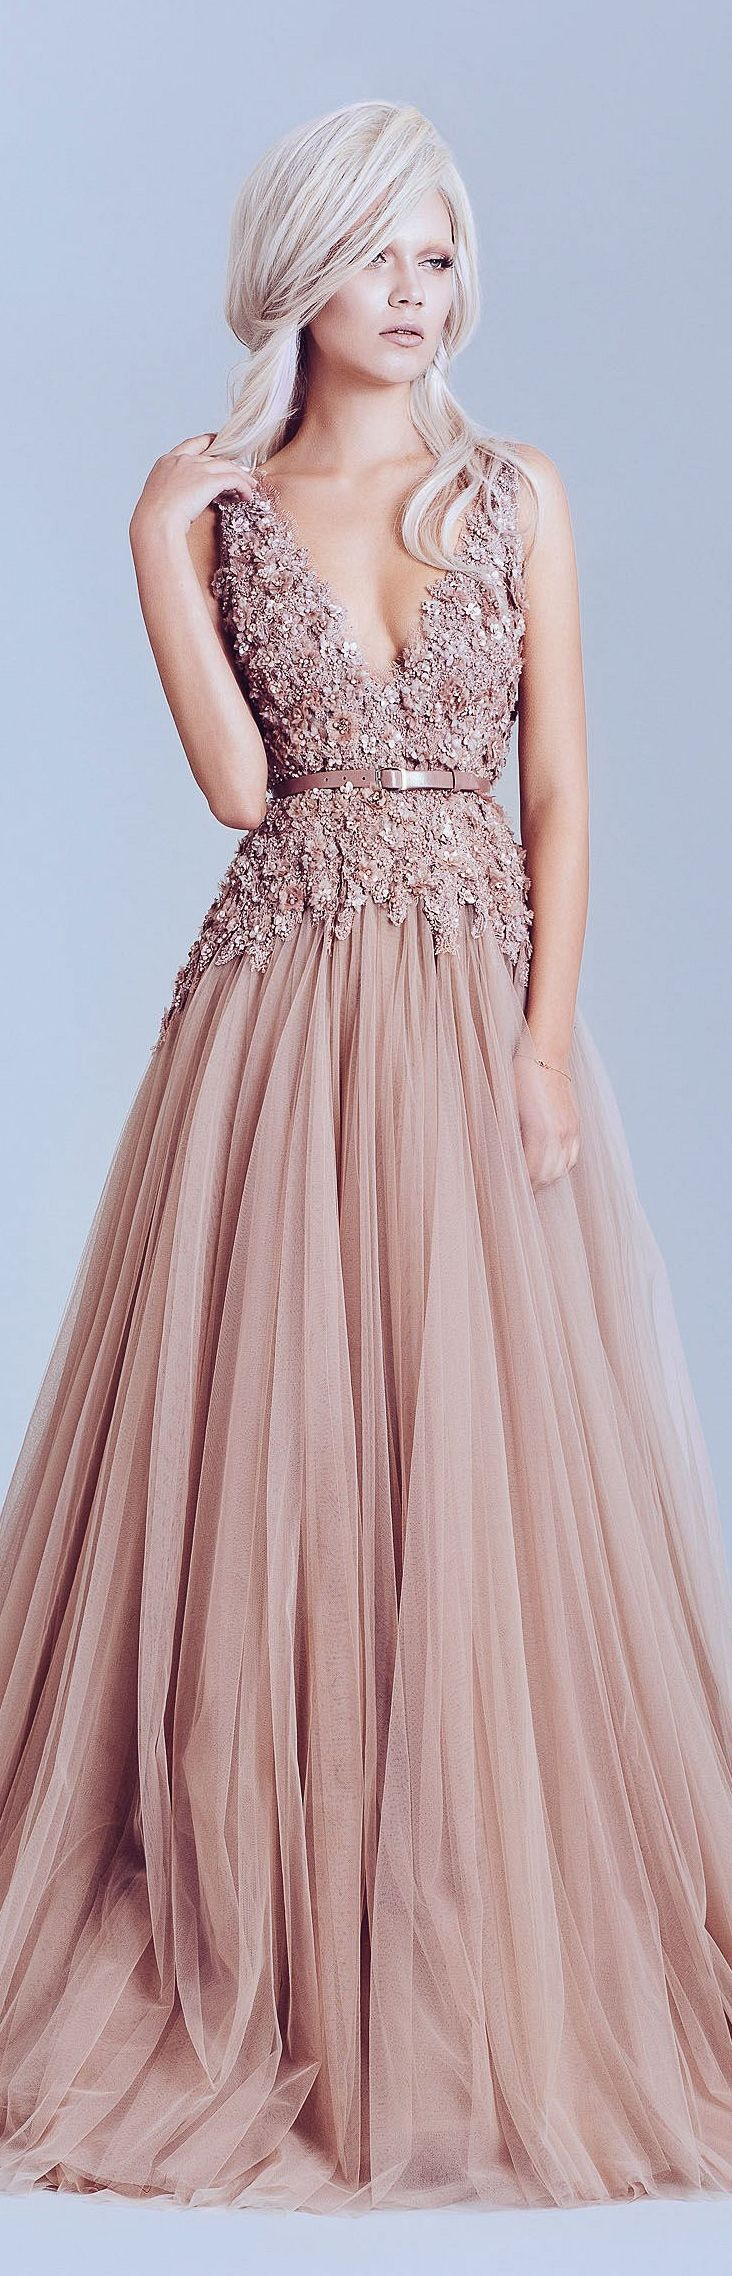 Evening dress ideas